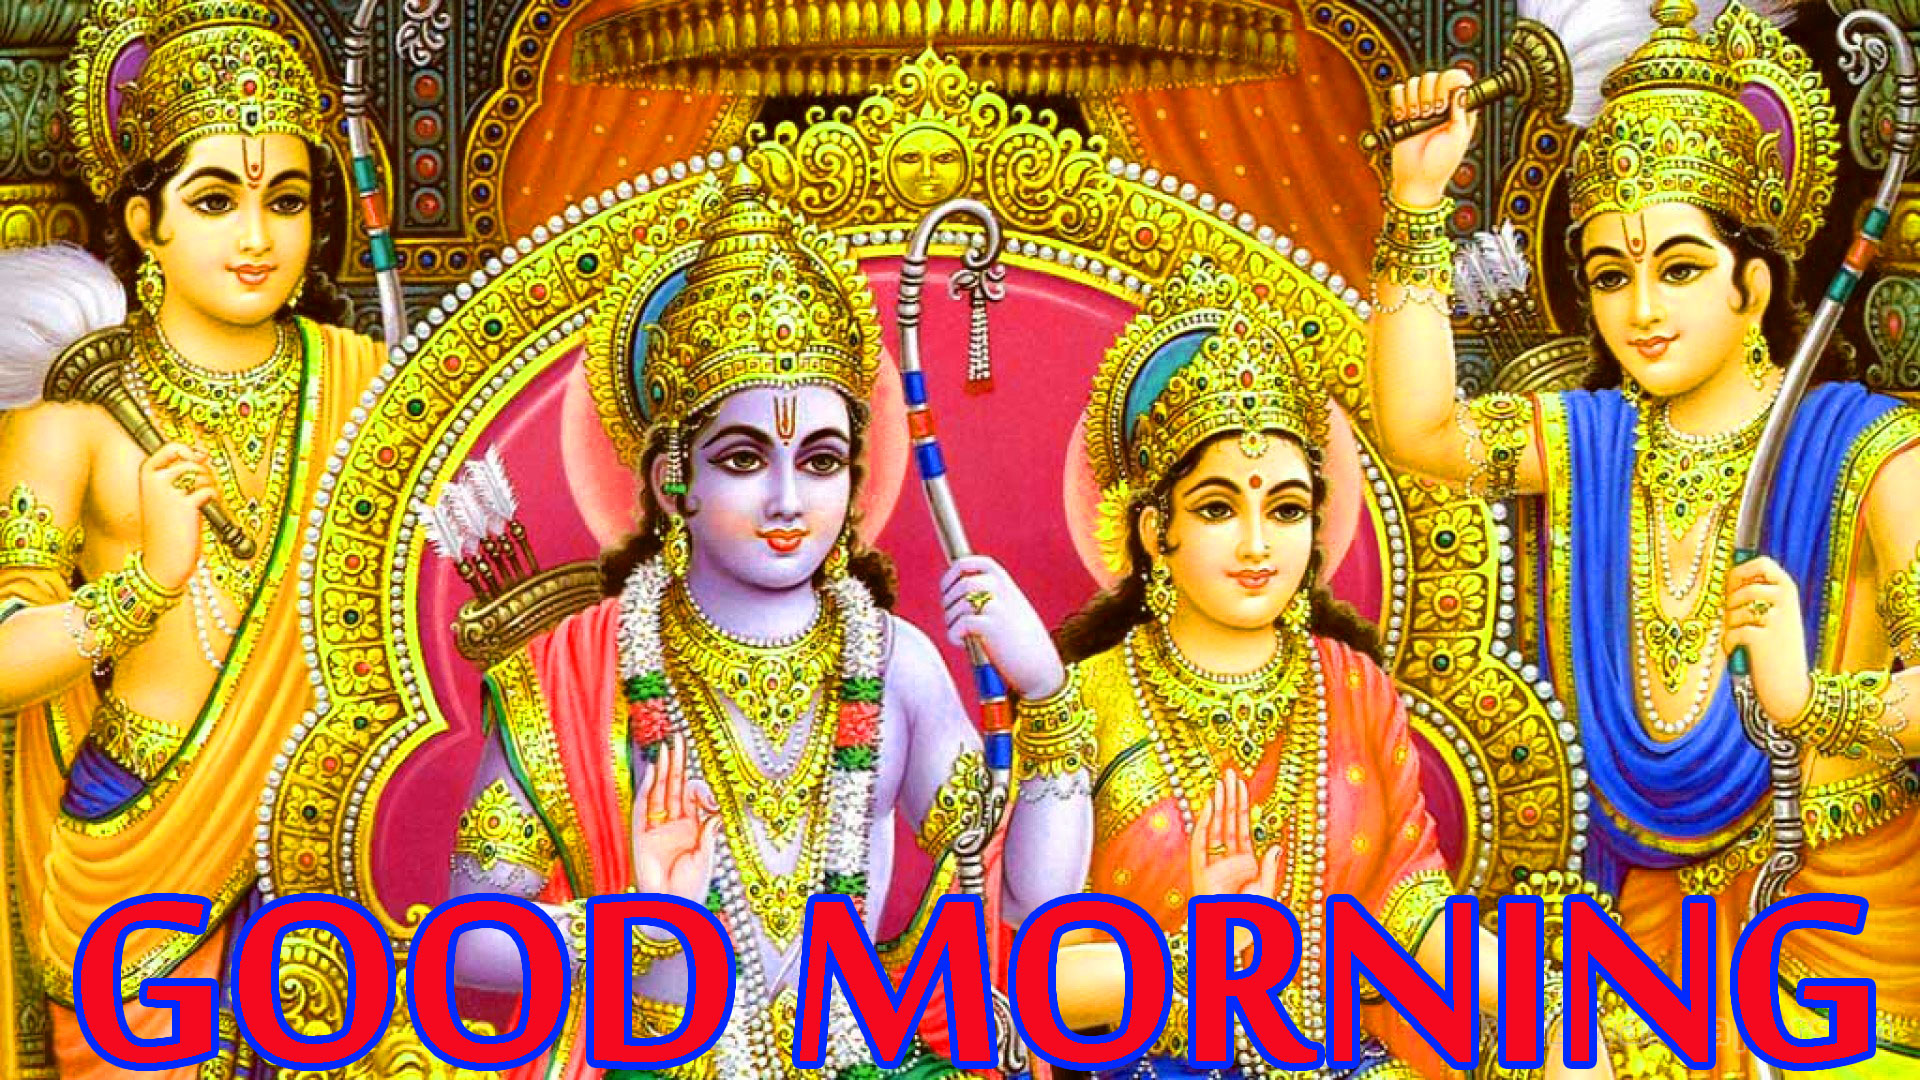 Hindu God Religious Good Morning Images Wallpaper Pics HD For Whatsapp